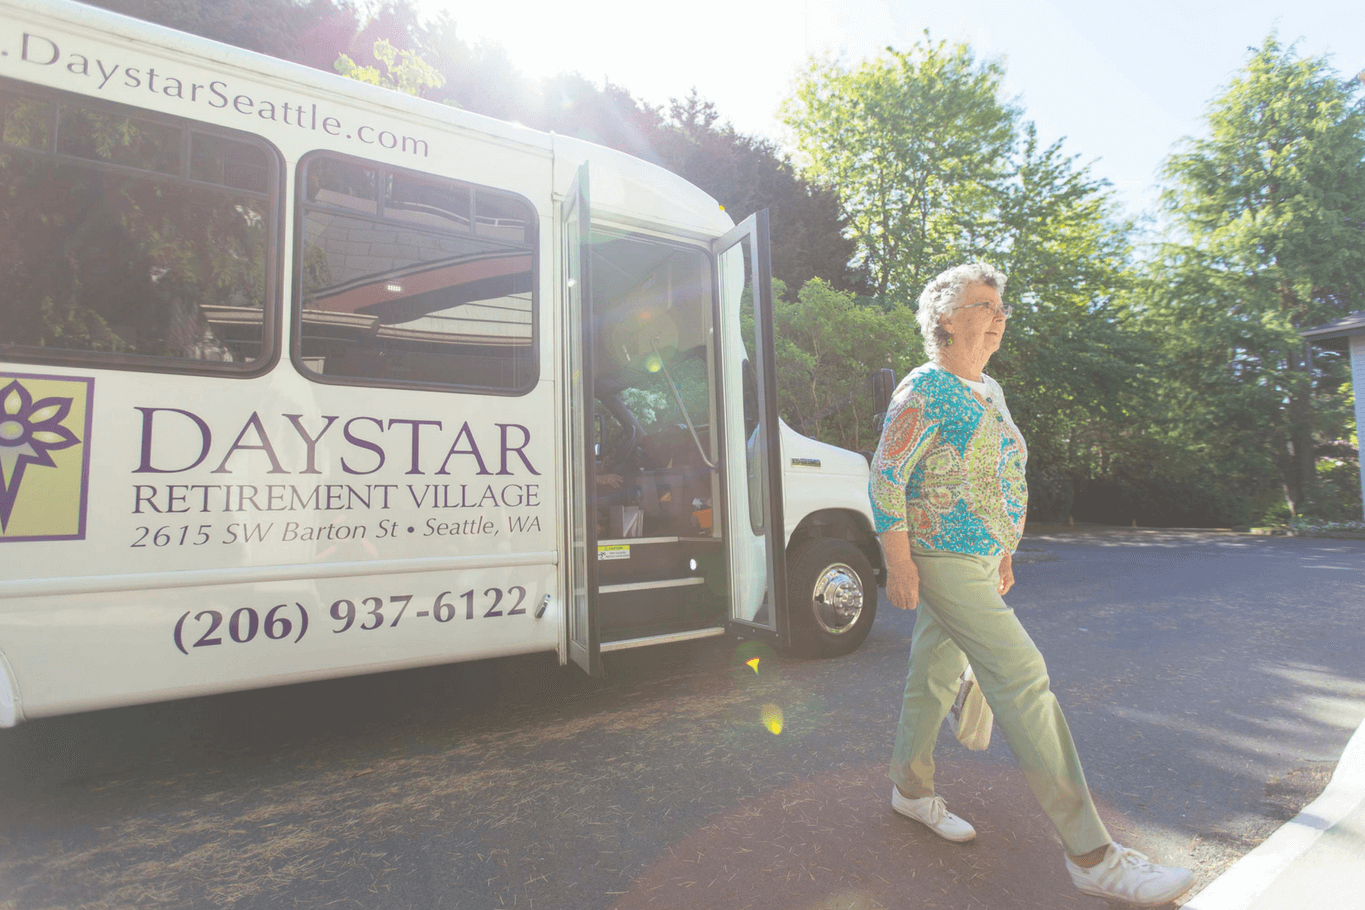 Daystar semitransparent